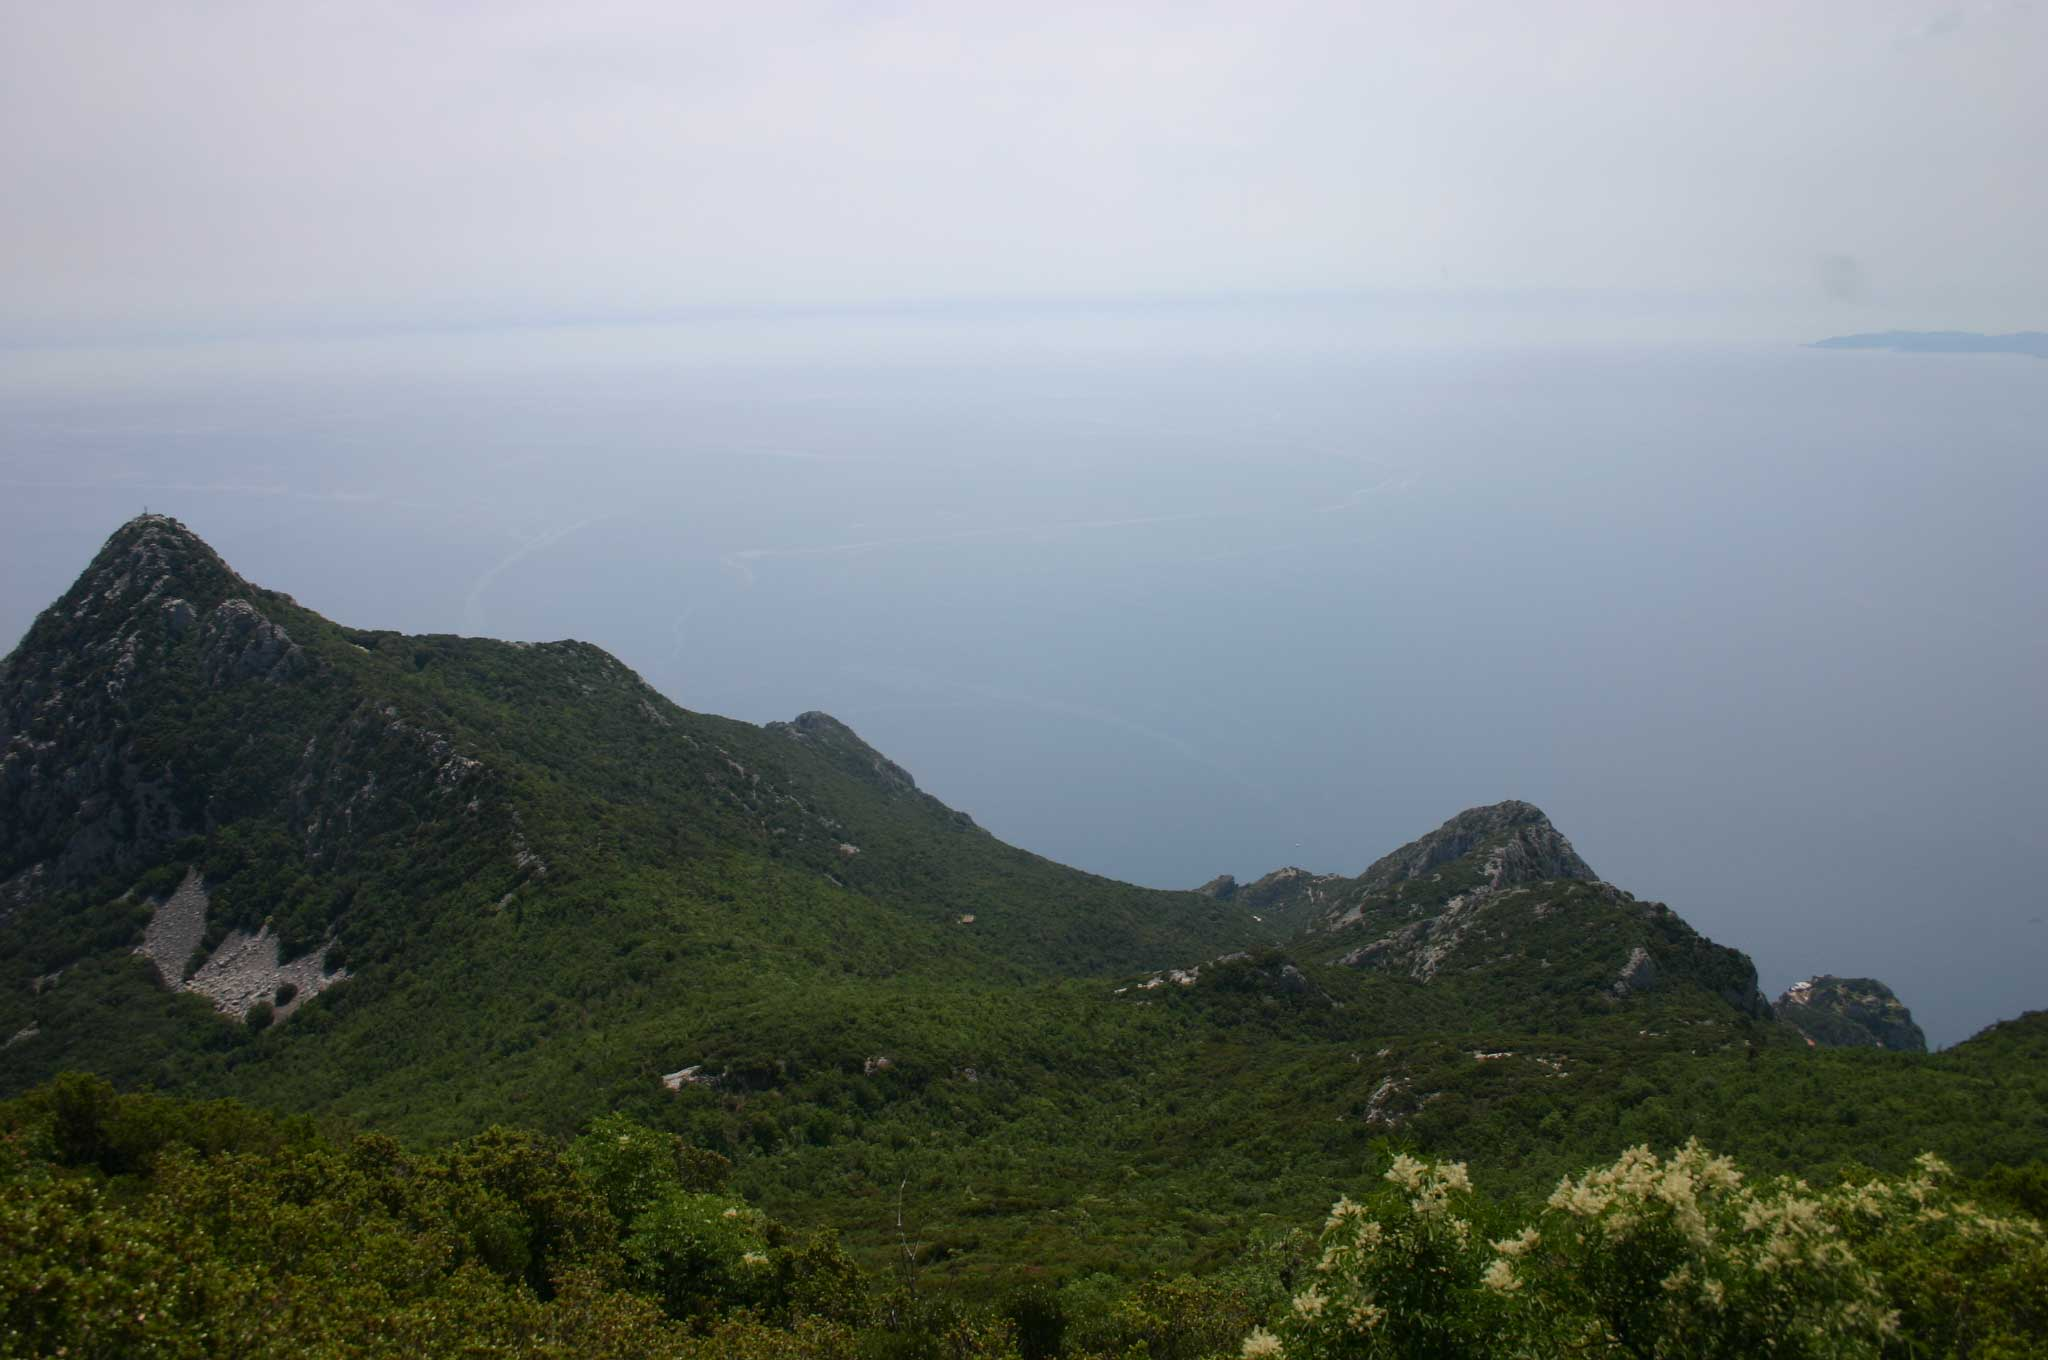 Mount Athos: Mt Athos - ? From Lower Slopes - © William Mackesy